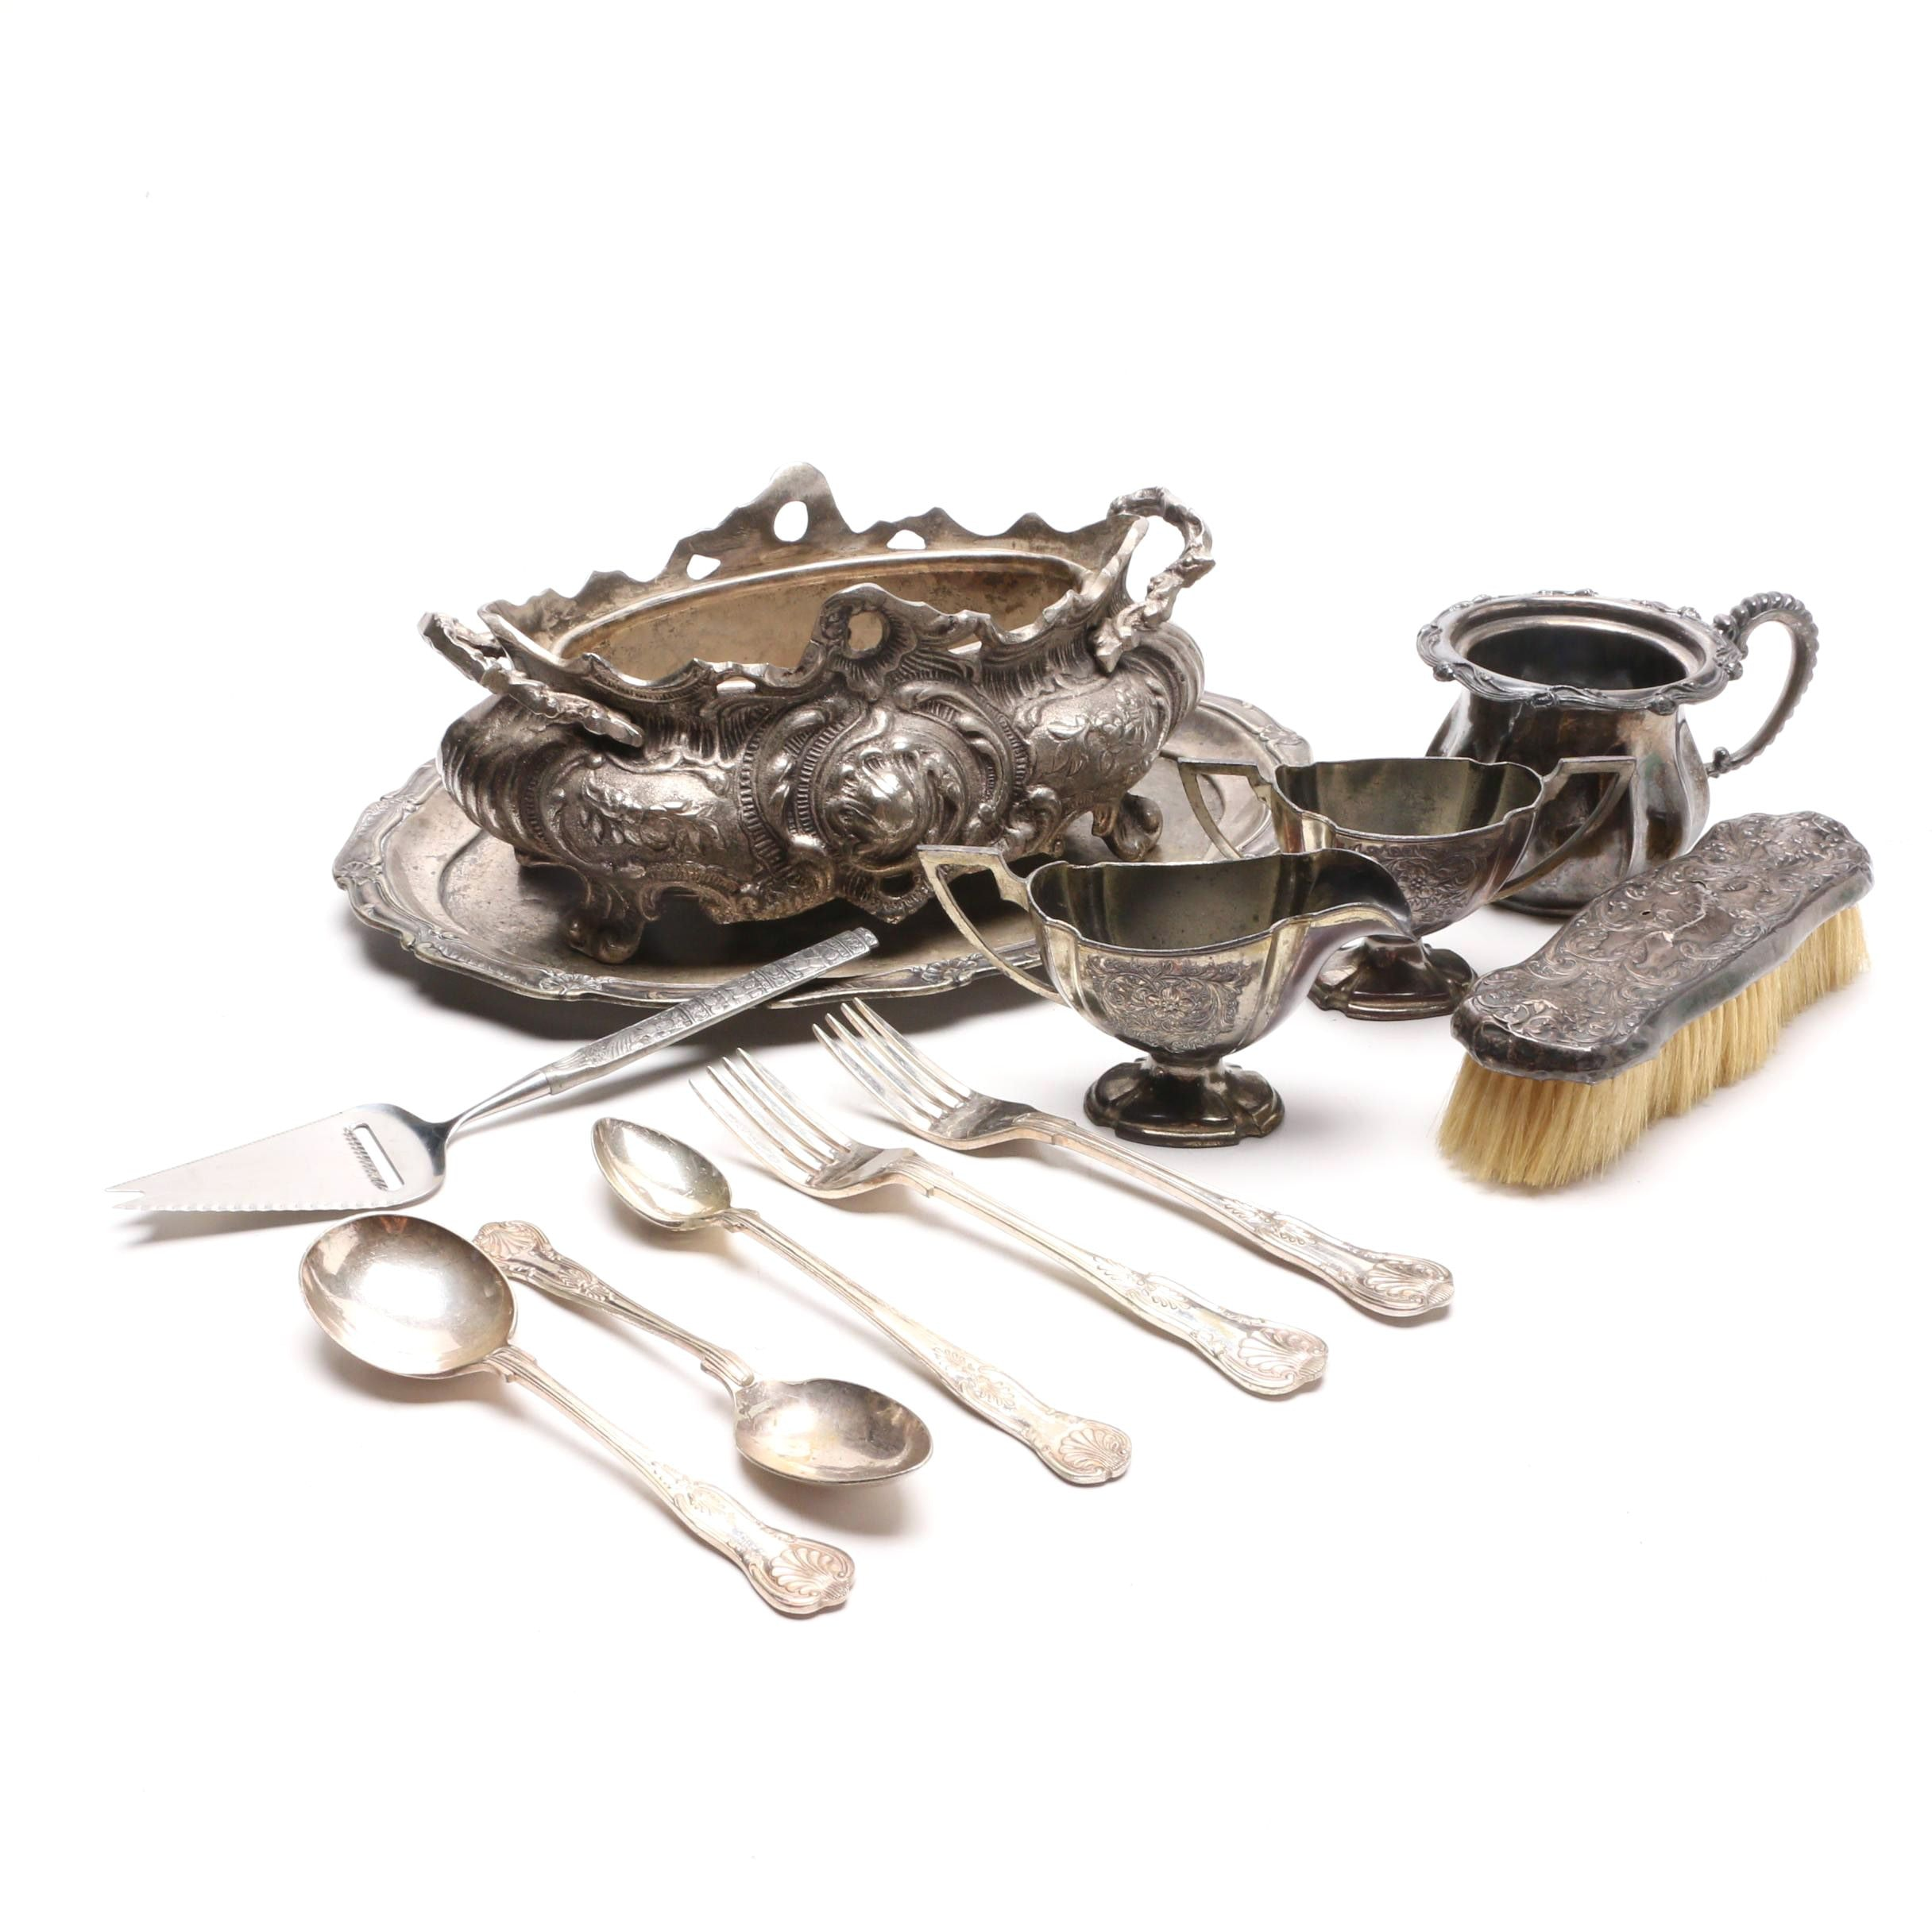 Silver Plated Tableware and Decor with Sterling Silver Clothes Brush